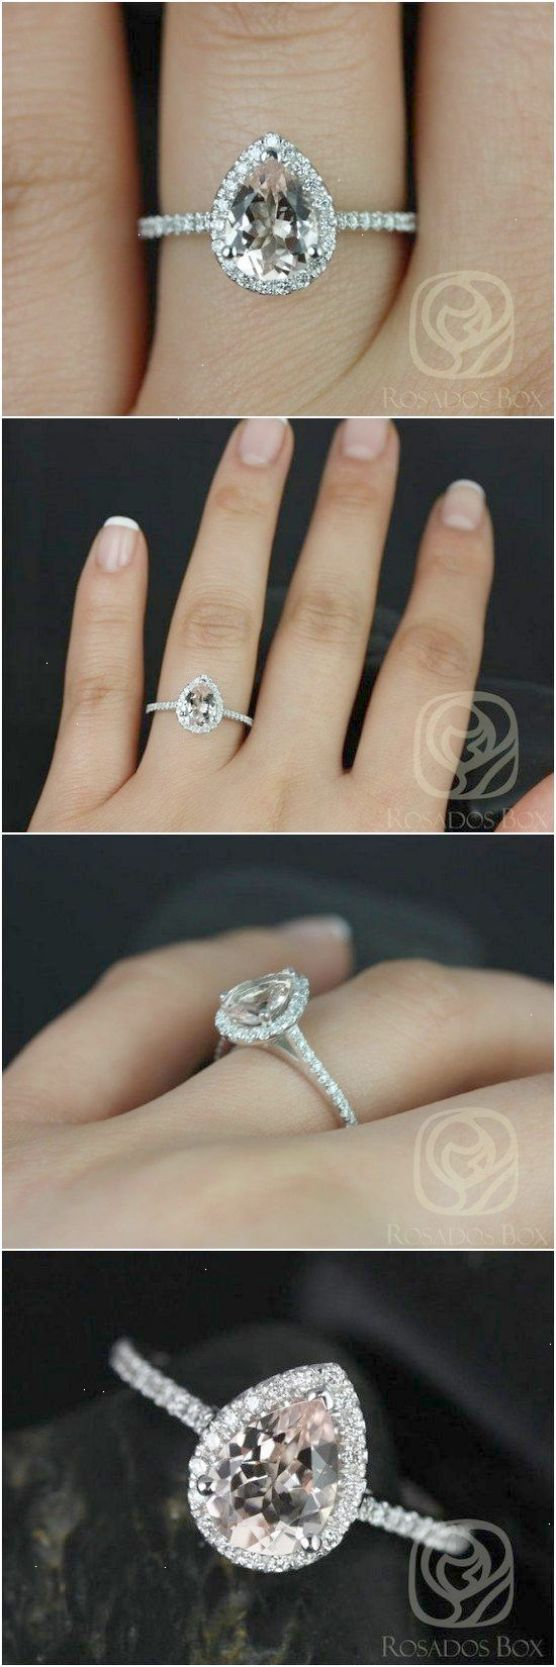 Get Some 0 Financing Engagement Rings Repin Engagement Rings Affordable Beautiful Engagement Rings Engagement Rings Under 1000